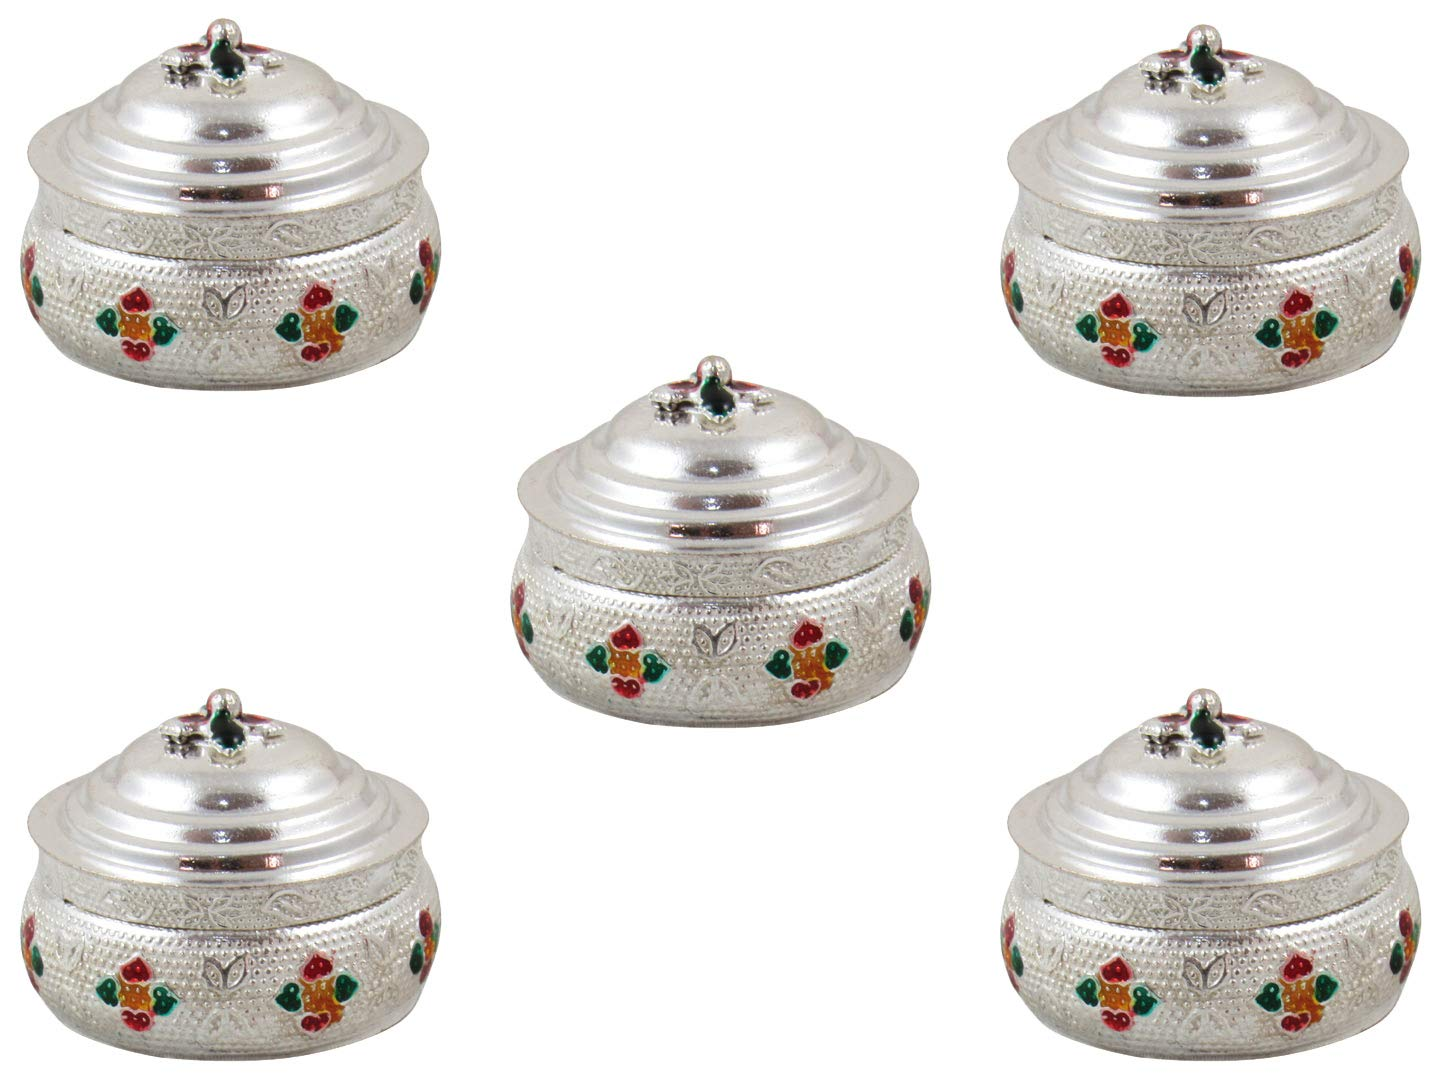 GoldGiftIdeas Silver Plated Meenakari Sindoor Dabbi with Lid, Indian Pooja Items for Home, Return Gifts for Housewarming and Baby Shower, Indian KumKum Box for Gift with Potli Bags (Pack of 5)